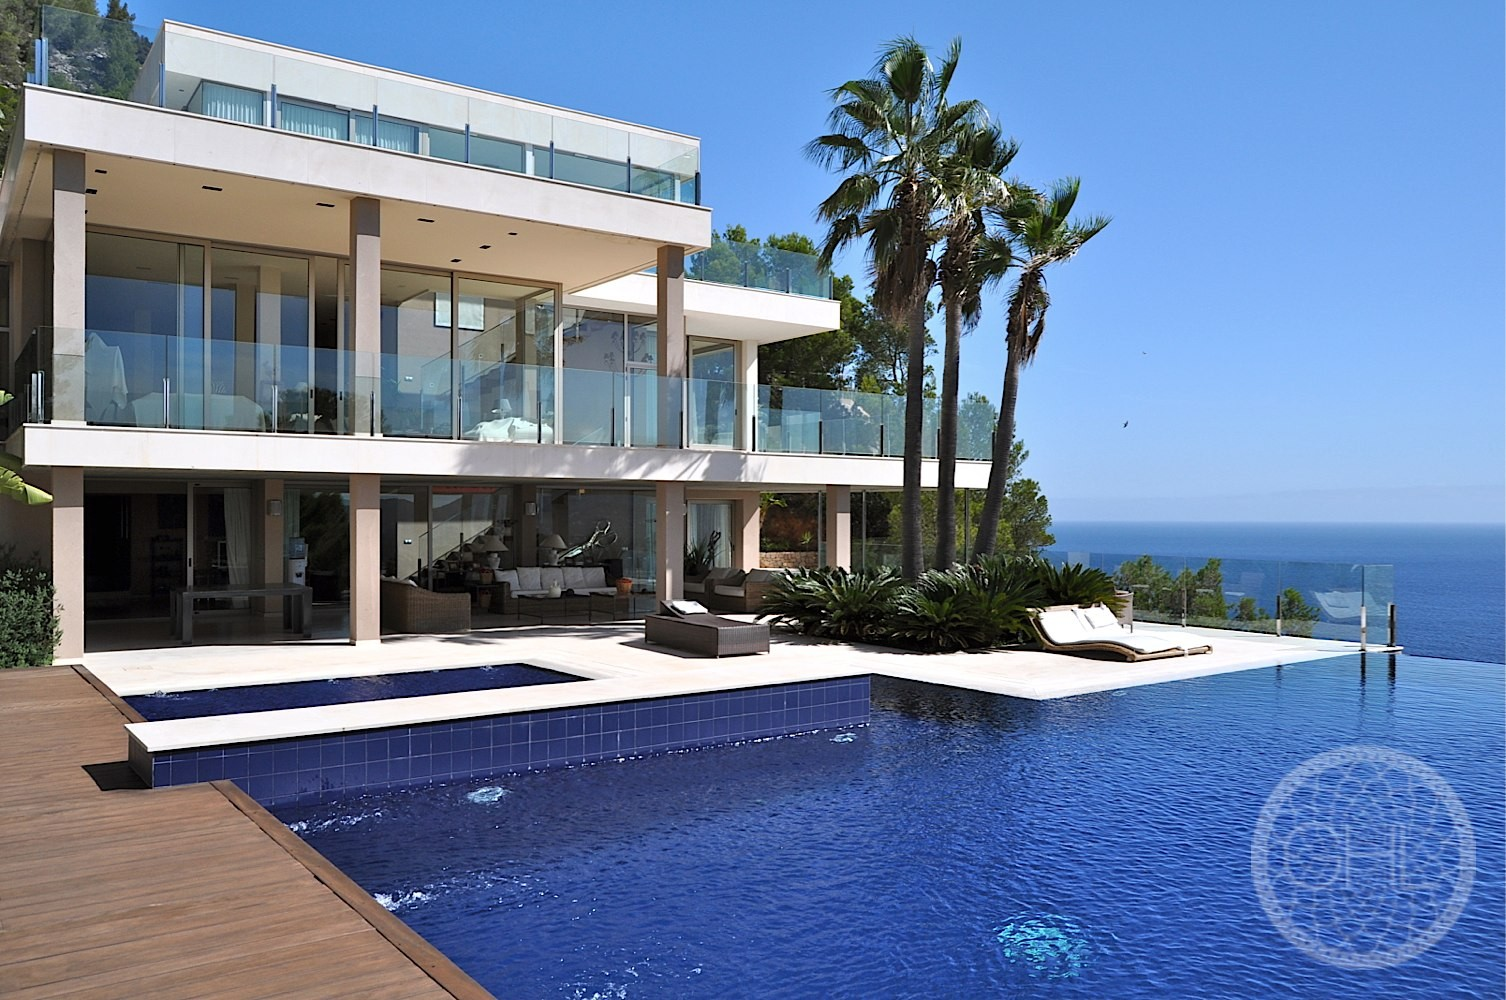 Picture Perfect House Beautiful Mansion Pictures Photos And Images For